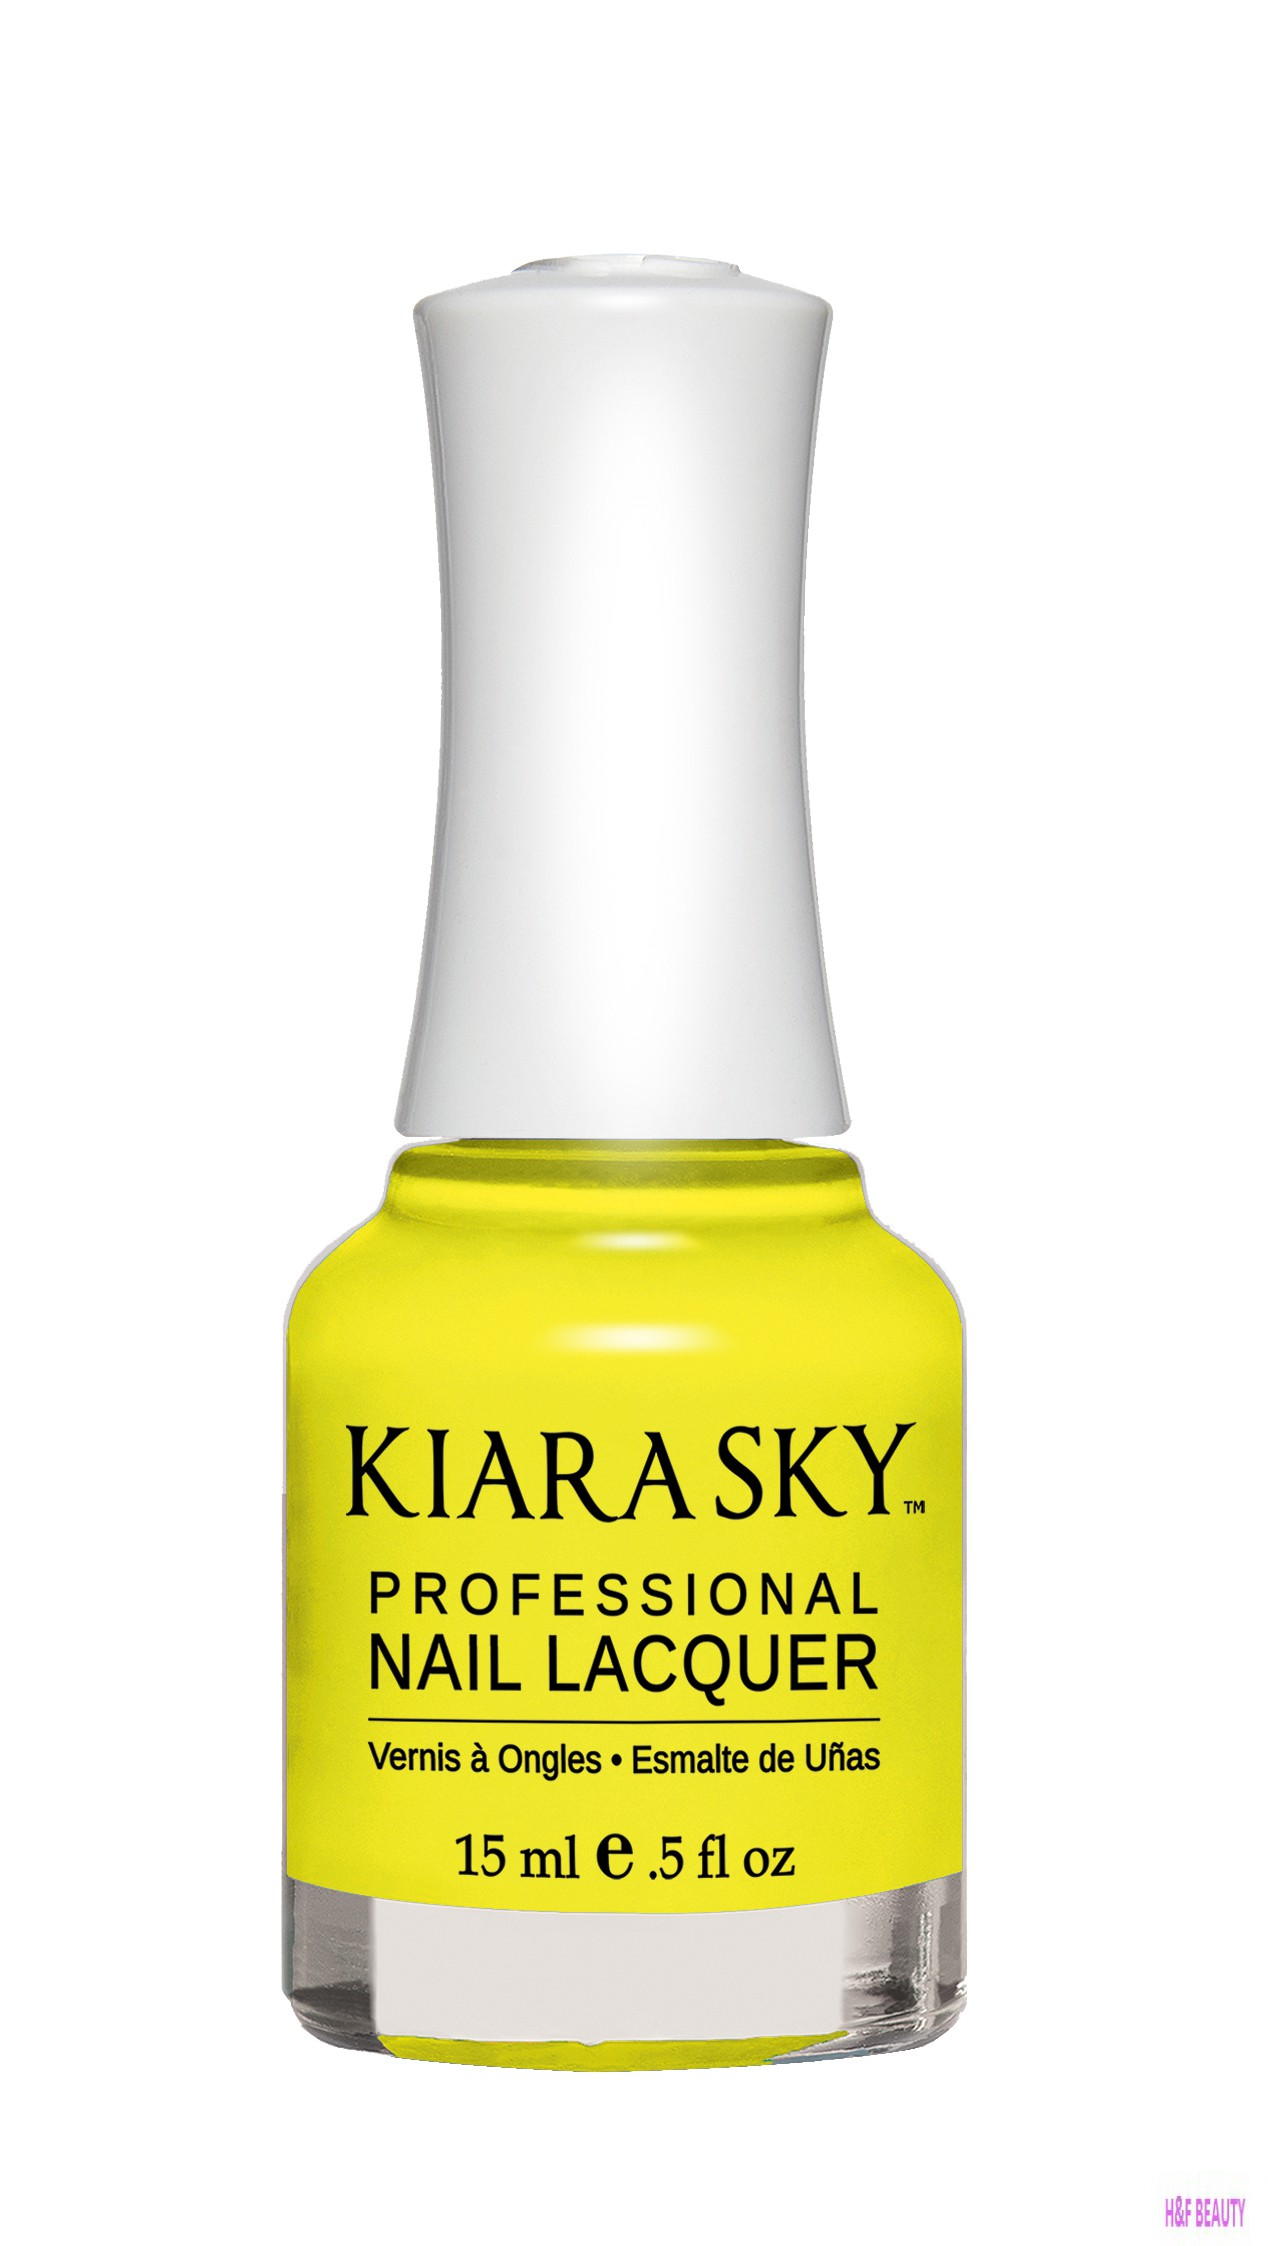 Kiara Sky NAIL LACQUER - N443 NEW YOLK CITY